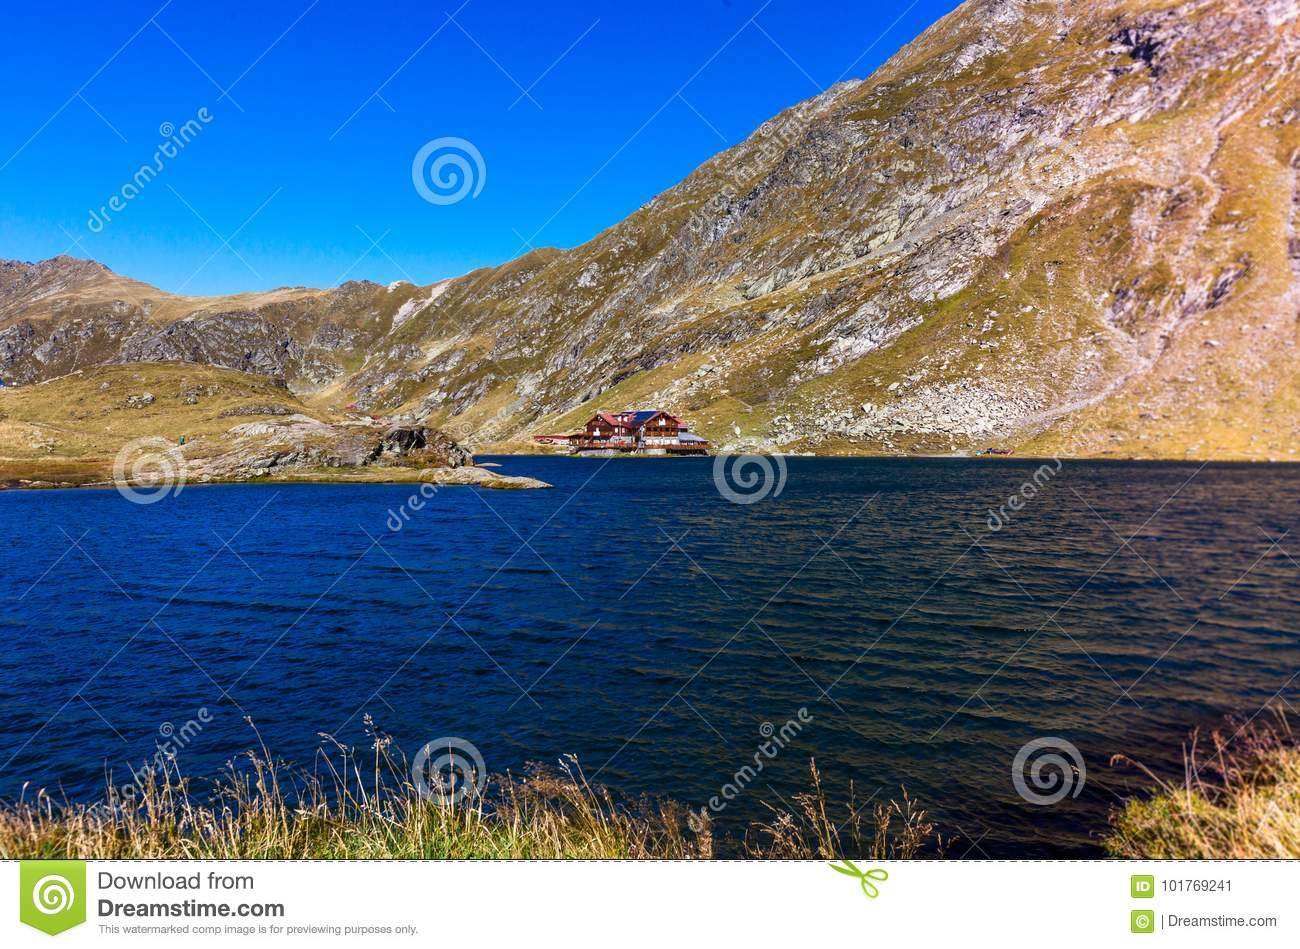 Balea Lake in the Carpathian Mountains, Red cabin By the lake